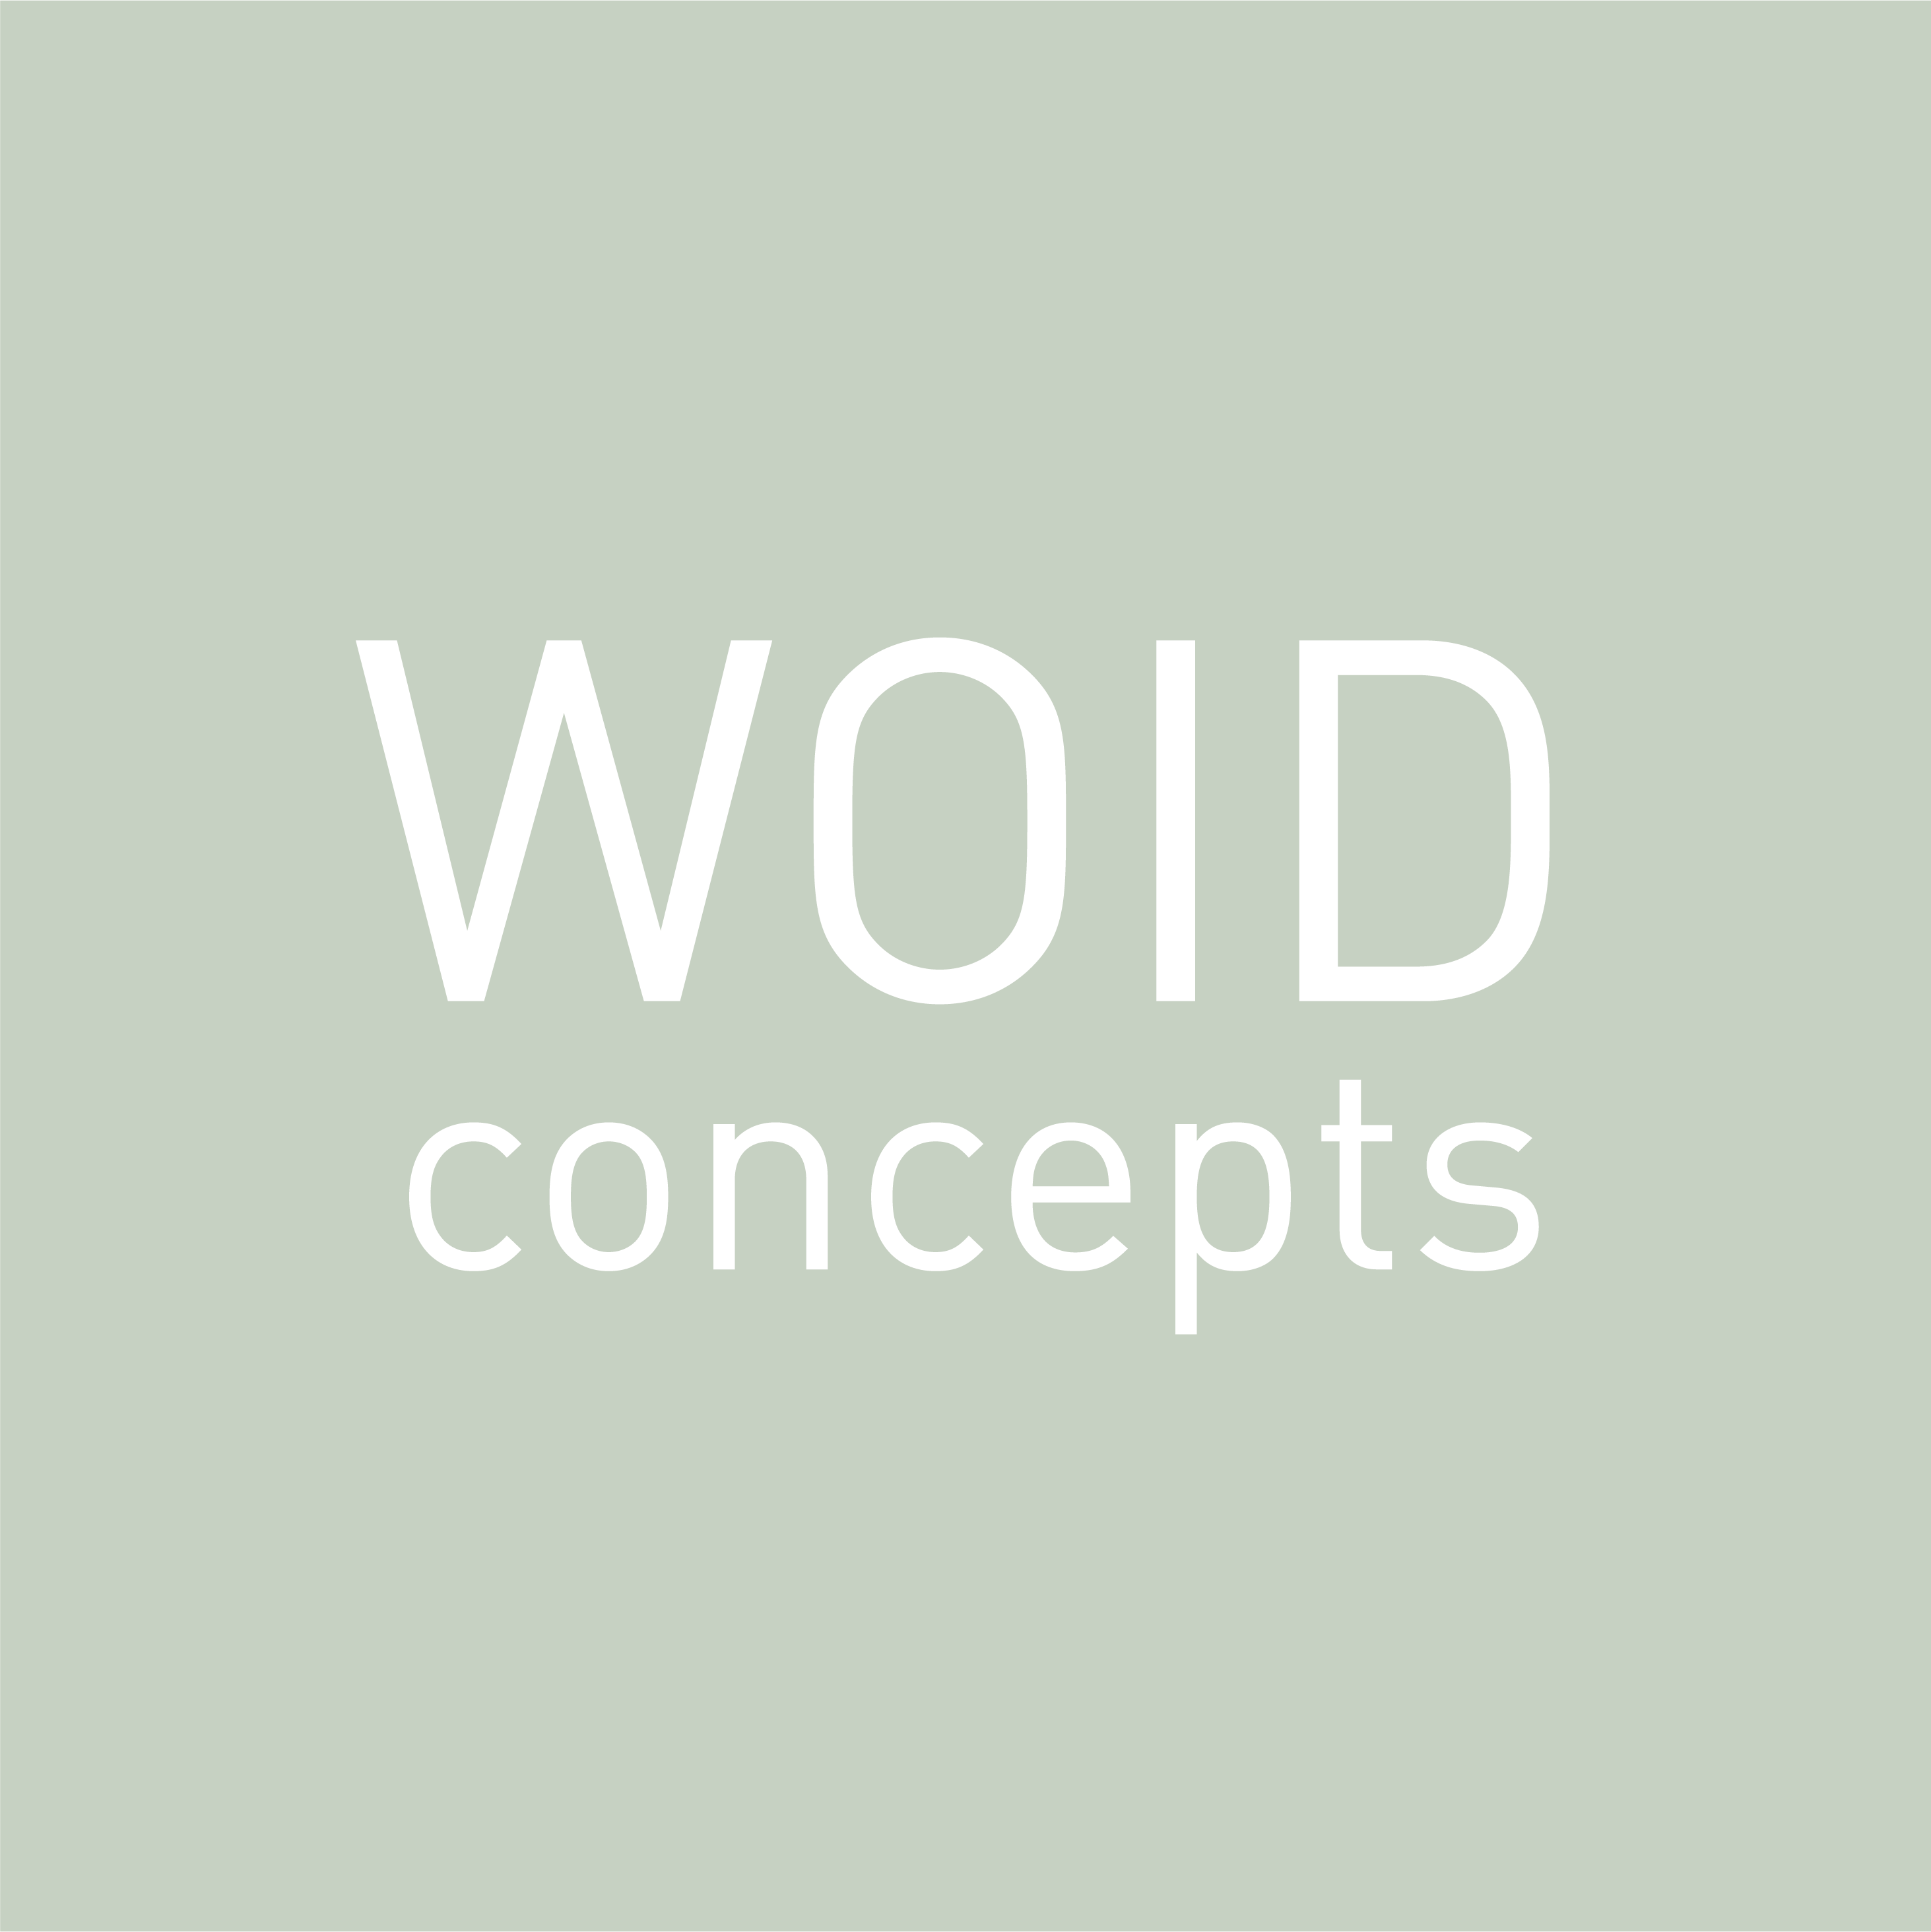 Woid Concepts